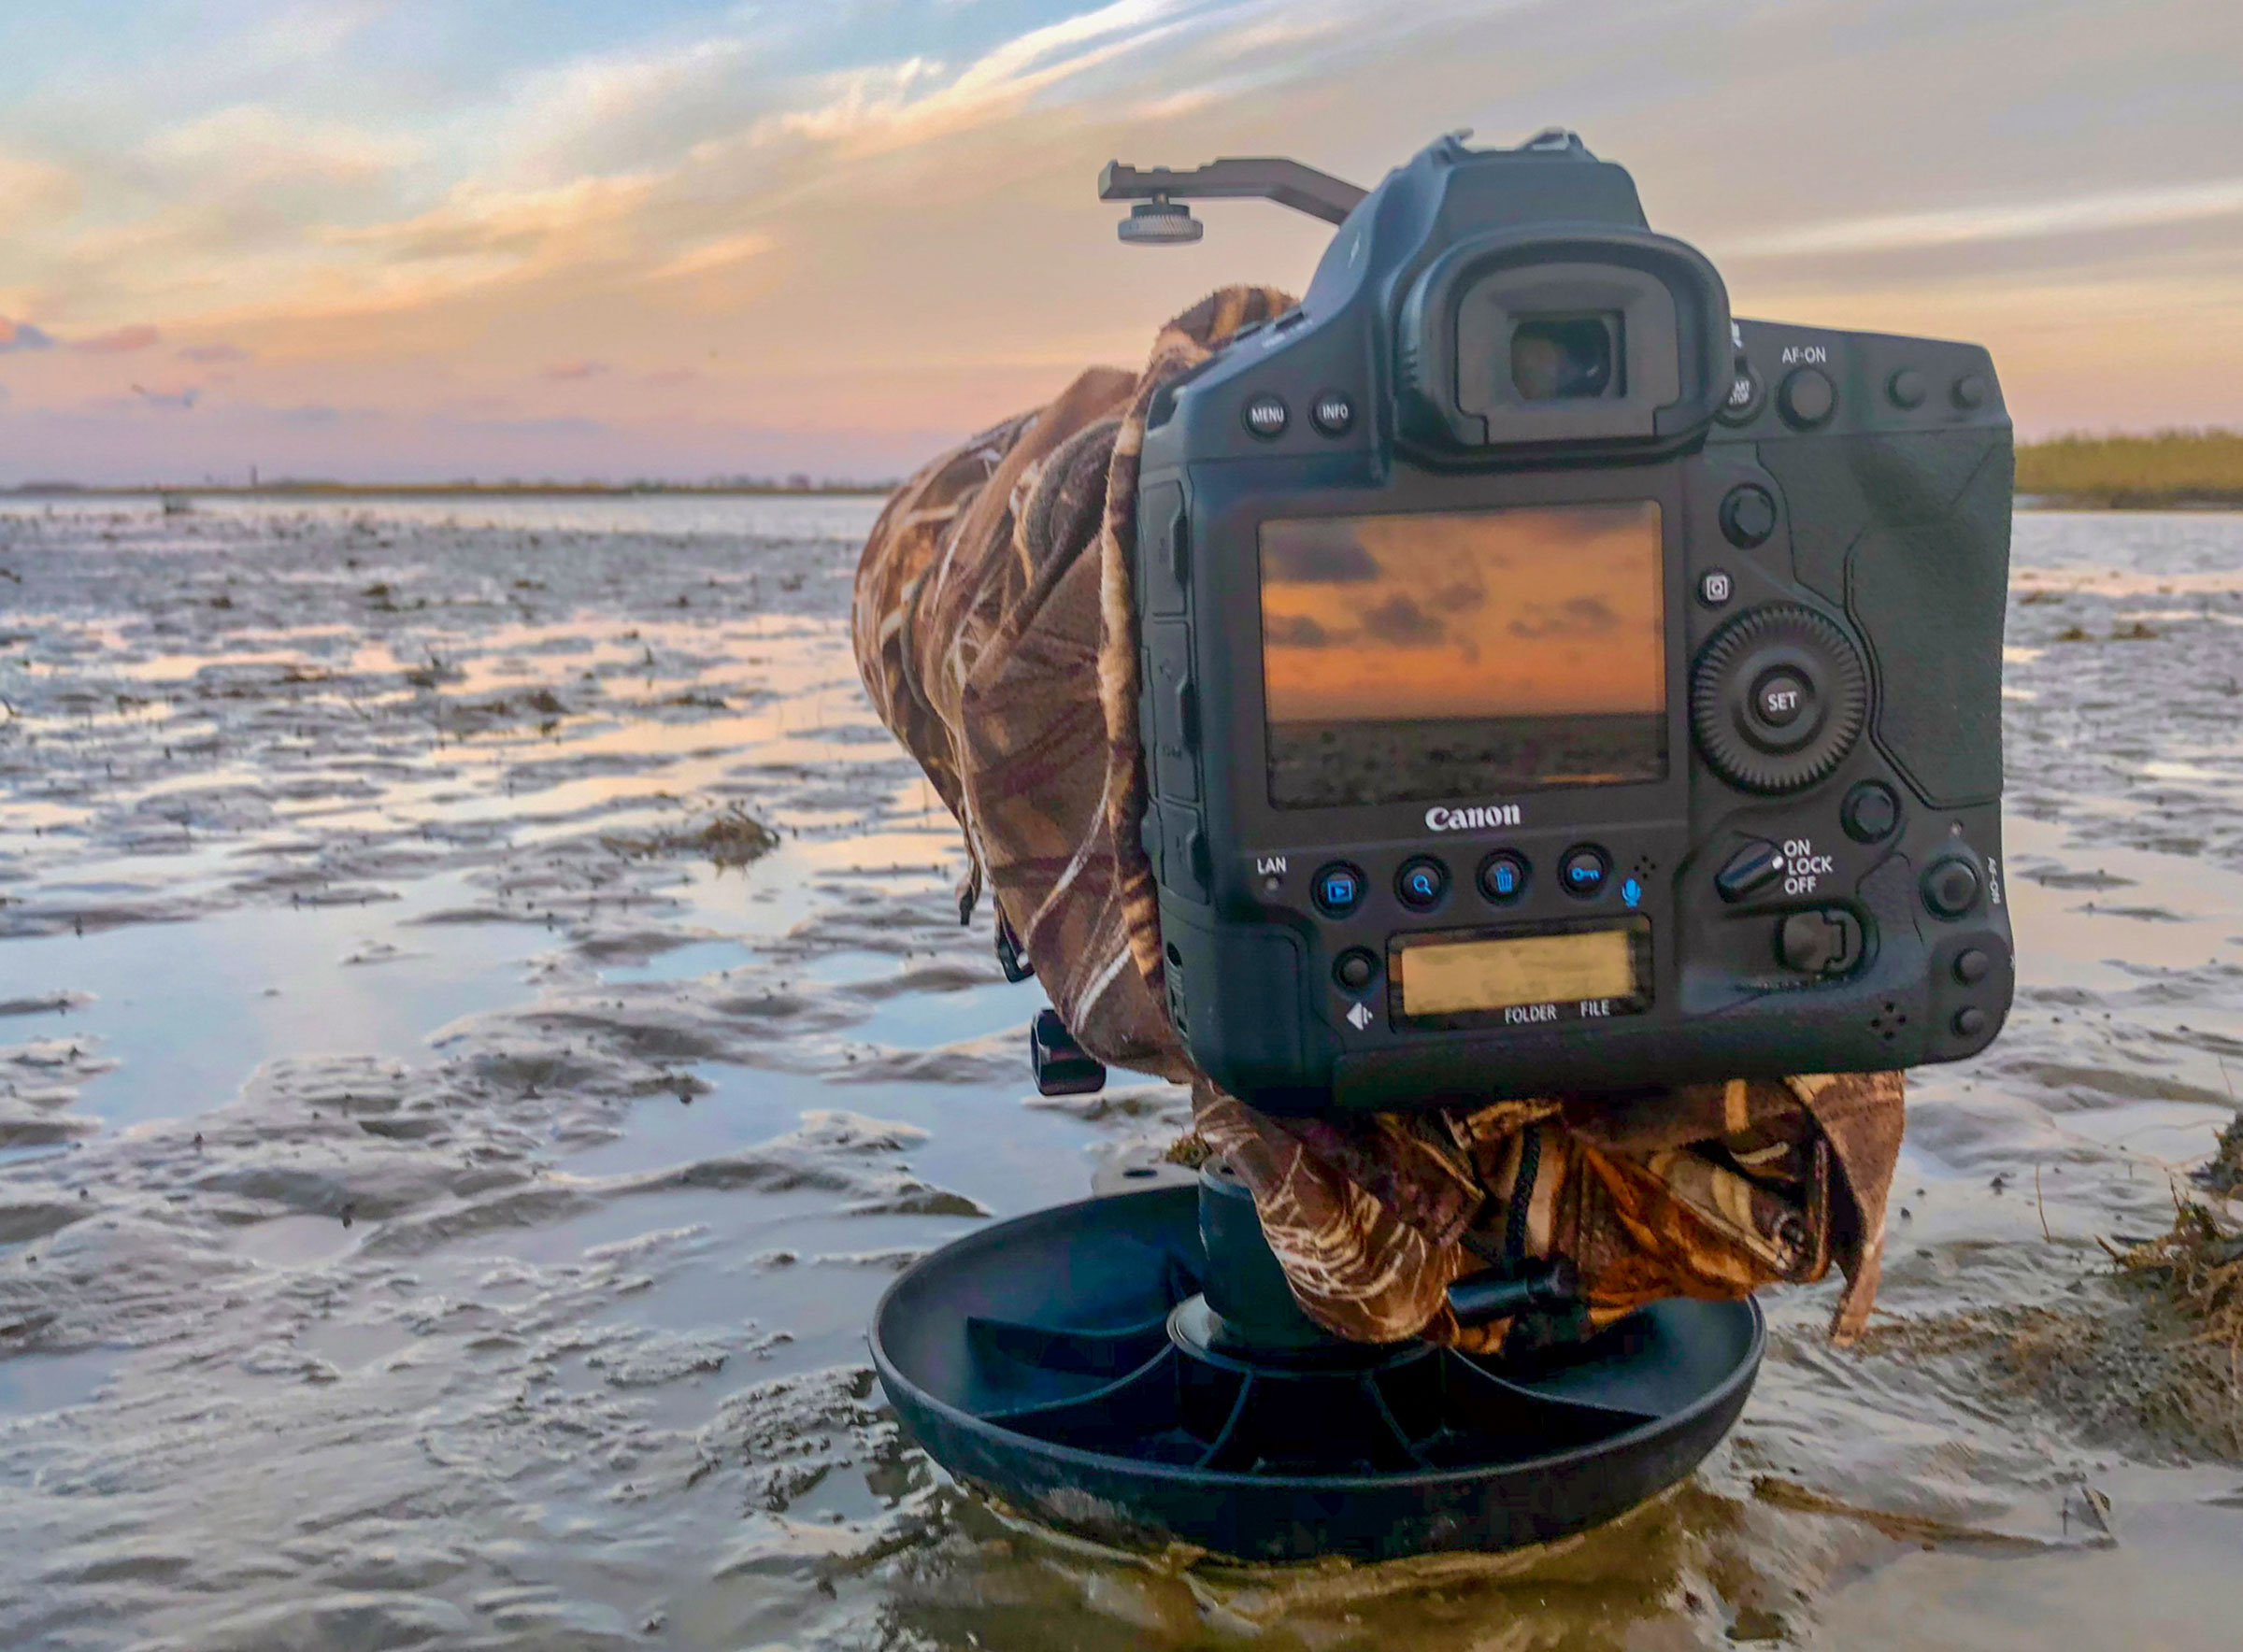 """Tim Timmis uses a Skimmer ground pod to get low-level, eye-to-eye shots. """"Birds don't recognize you as a person when lying down, and they will walk right up to you,"""" he says."""